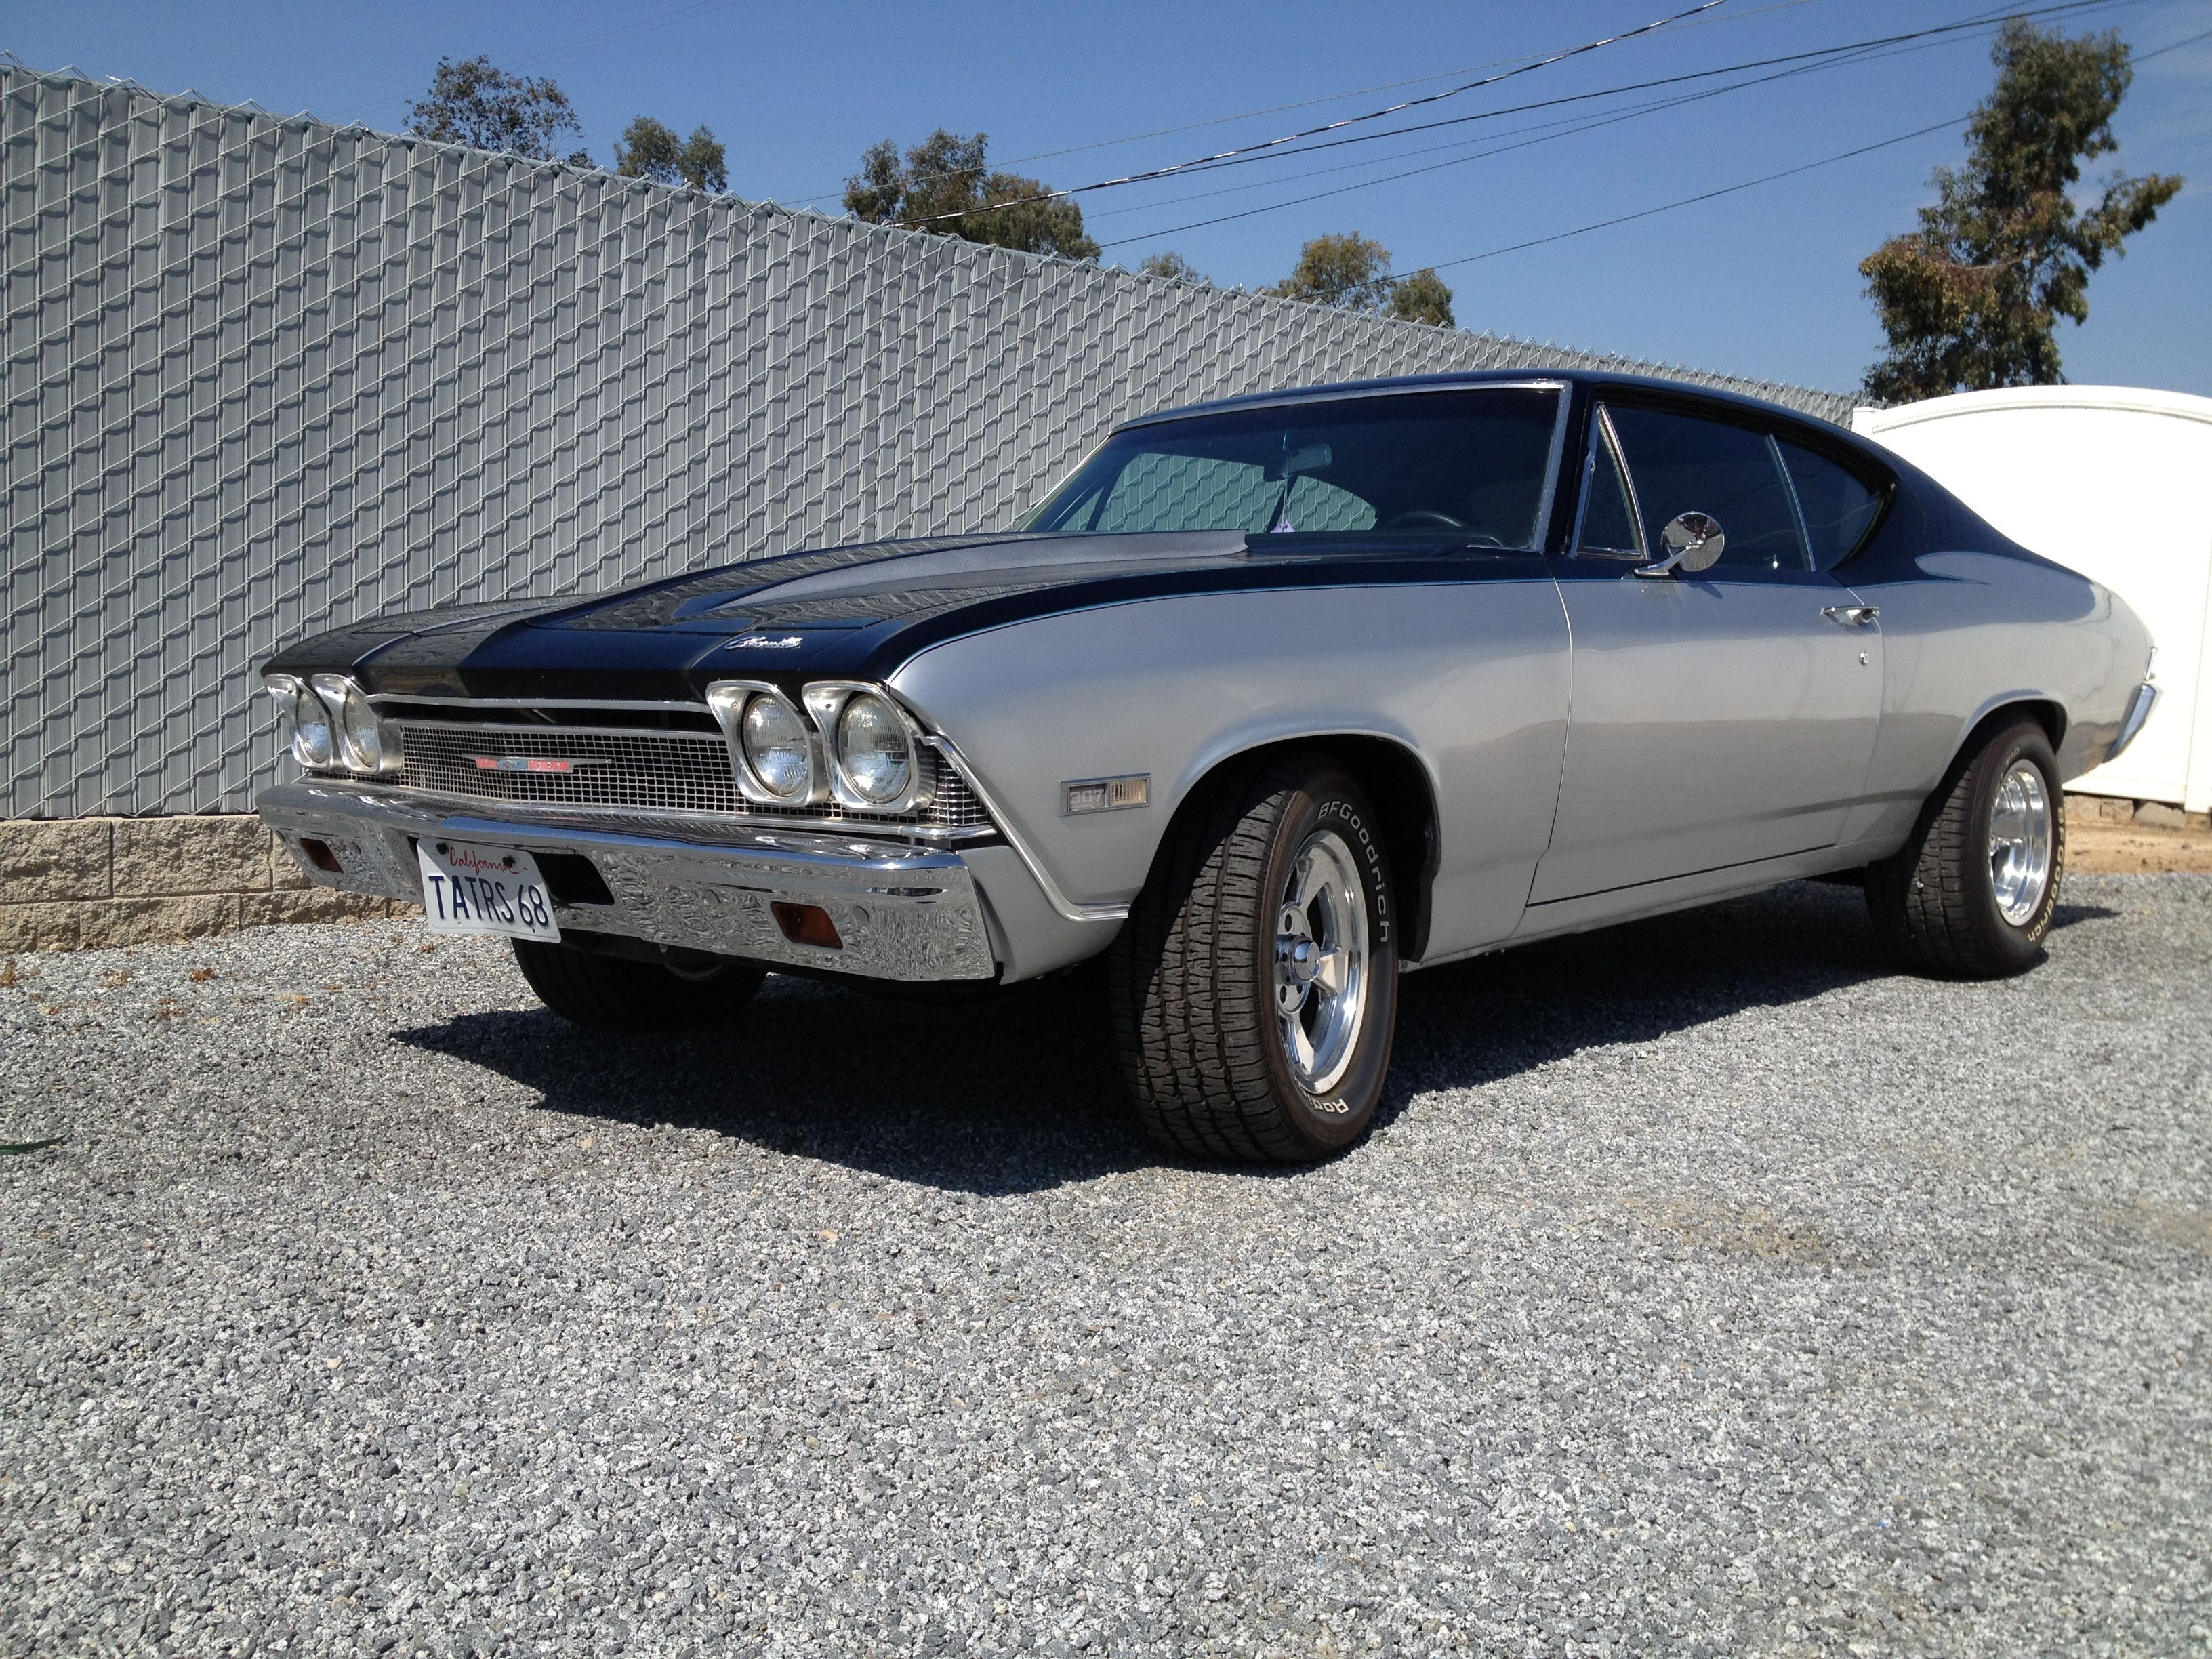 68 custom chevelle 425 hp   Cars and motorcycles   Cars motorcycles